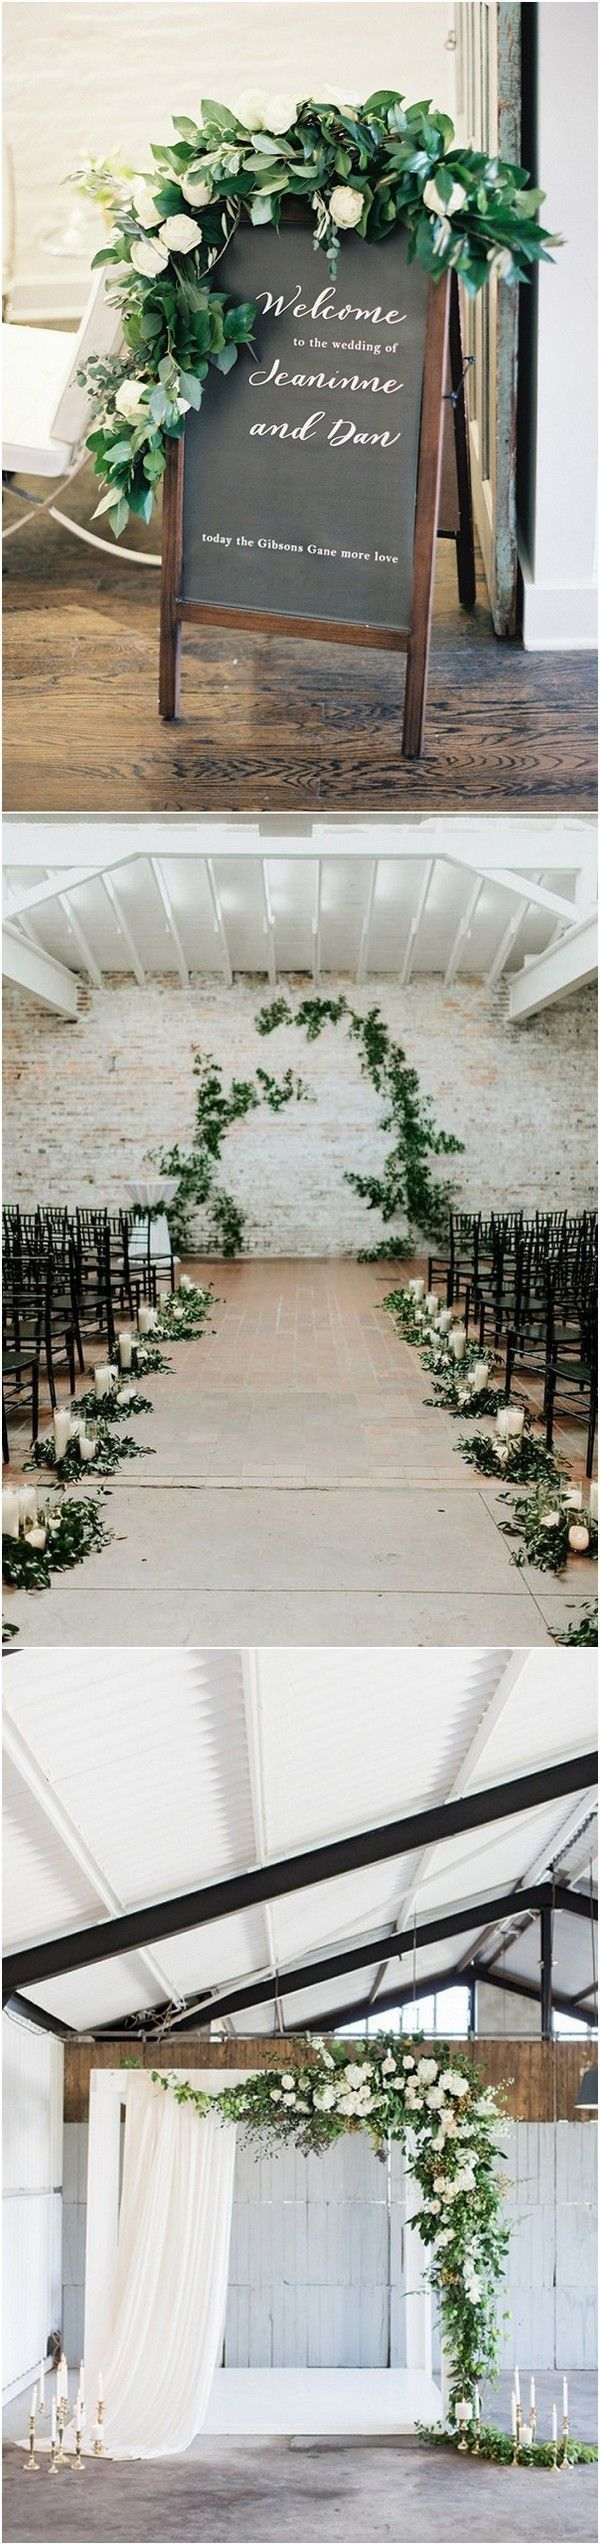 greenery wedding ceremony decoration ideas 2018 trends